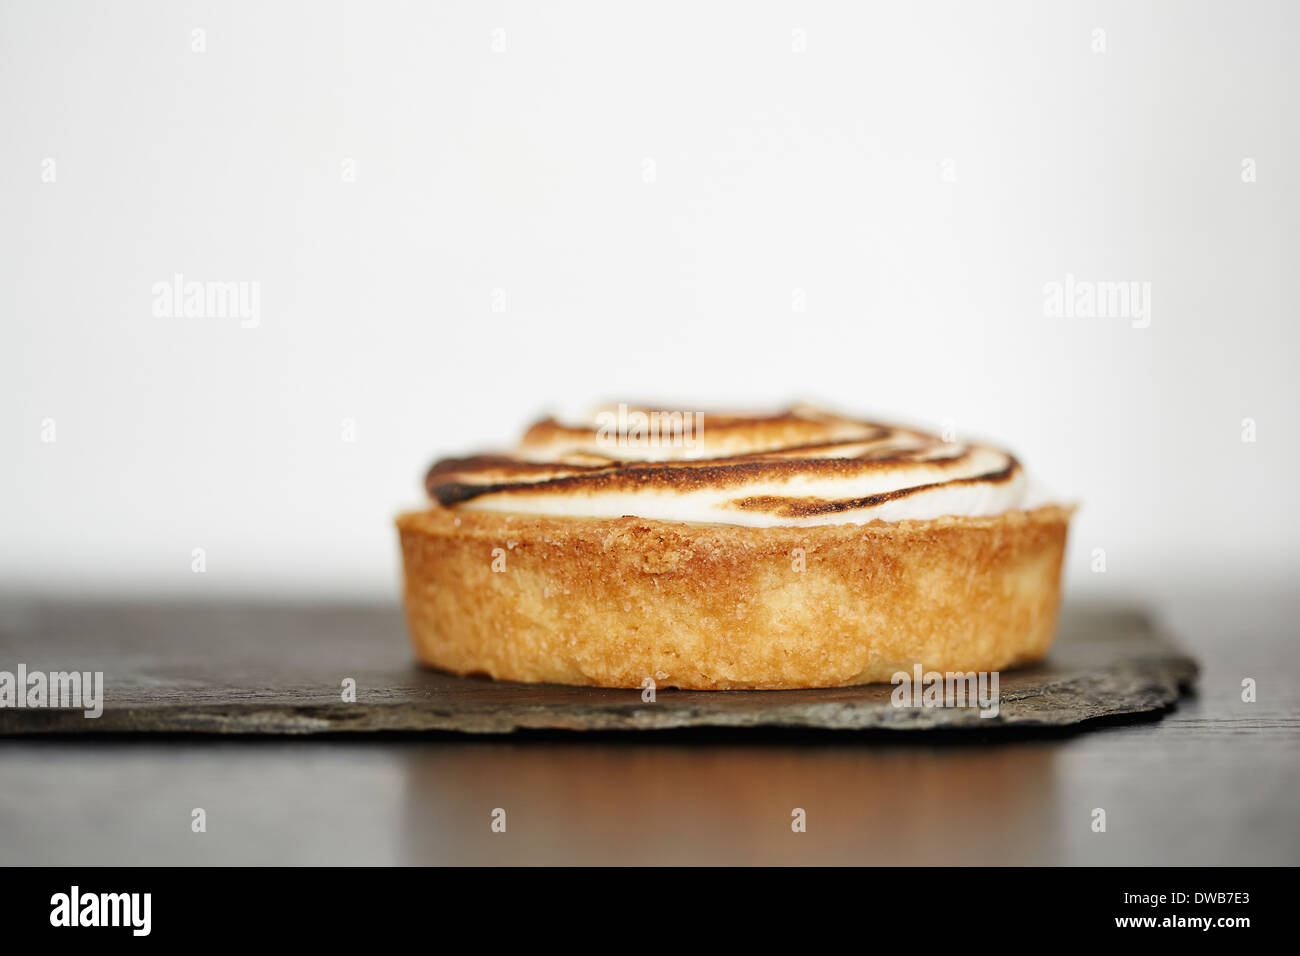 Close up de tarte au citron sur ardoise Photo Stock